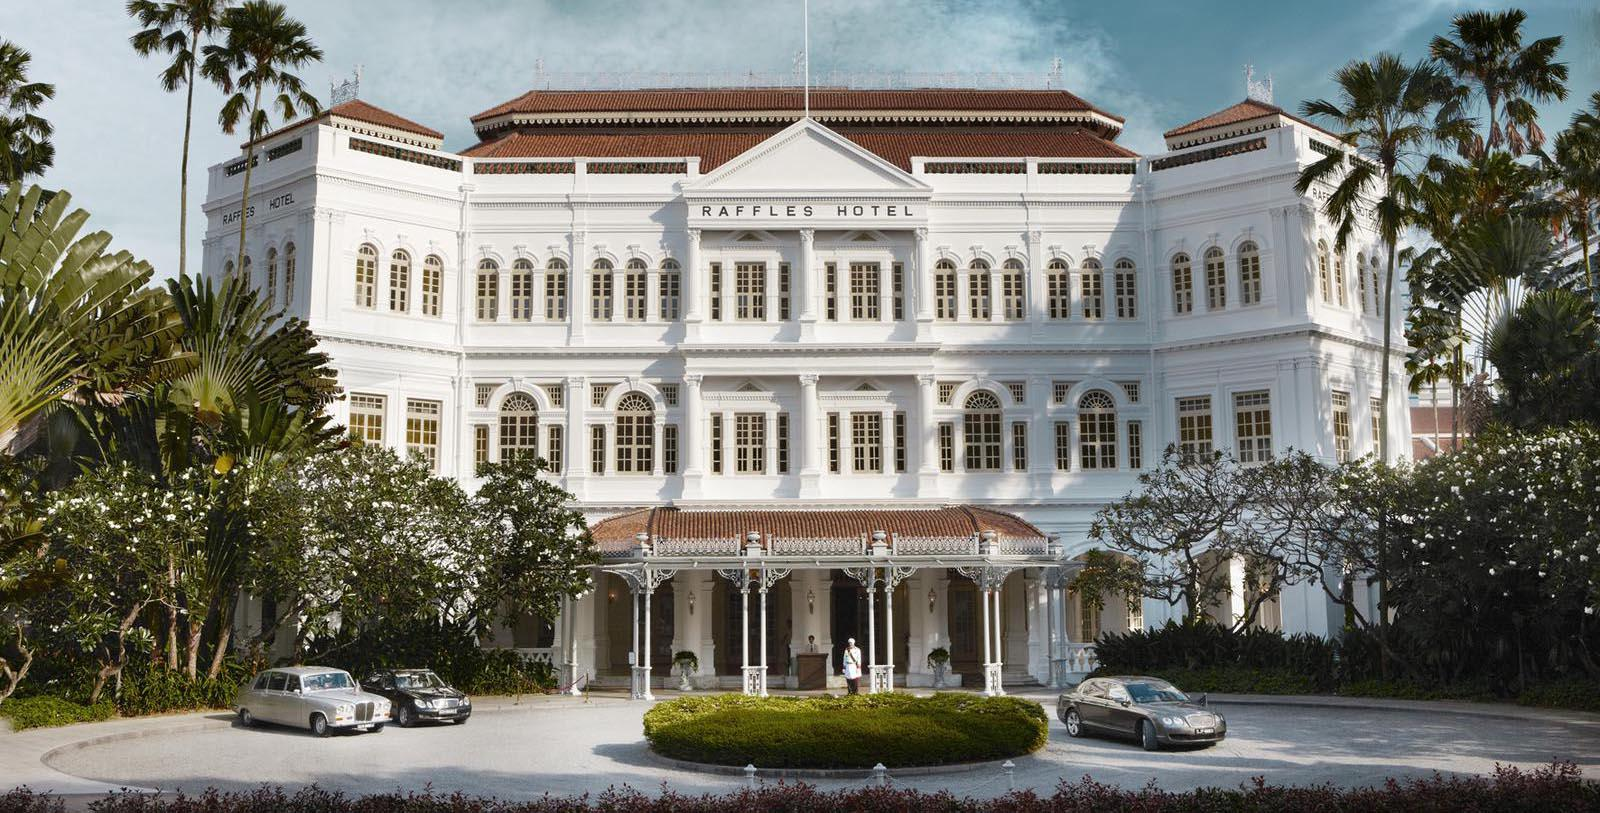 Image of Hotel Exterior Raffles Singapore, 1887, Member of Historic Hotels Worldwide, in Singapore, Overview